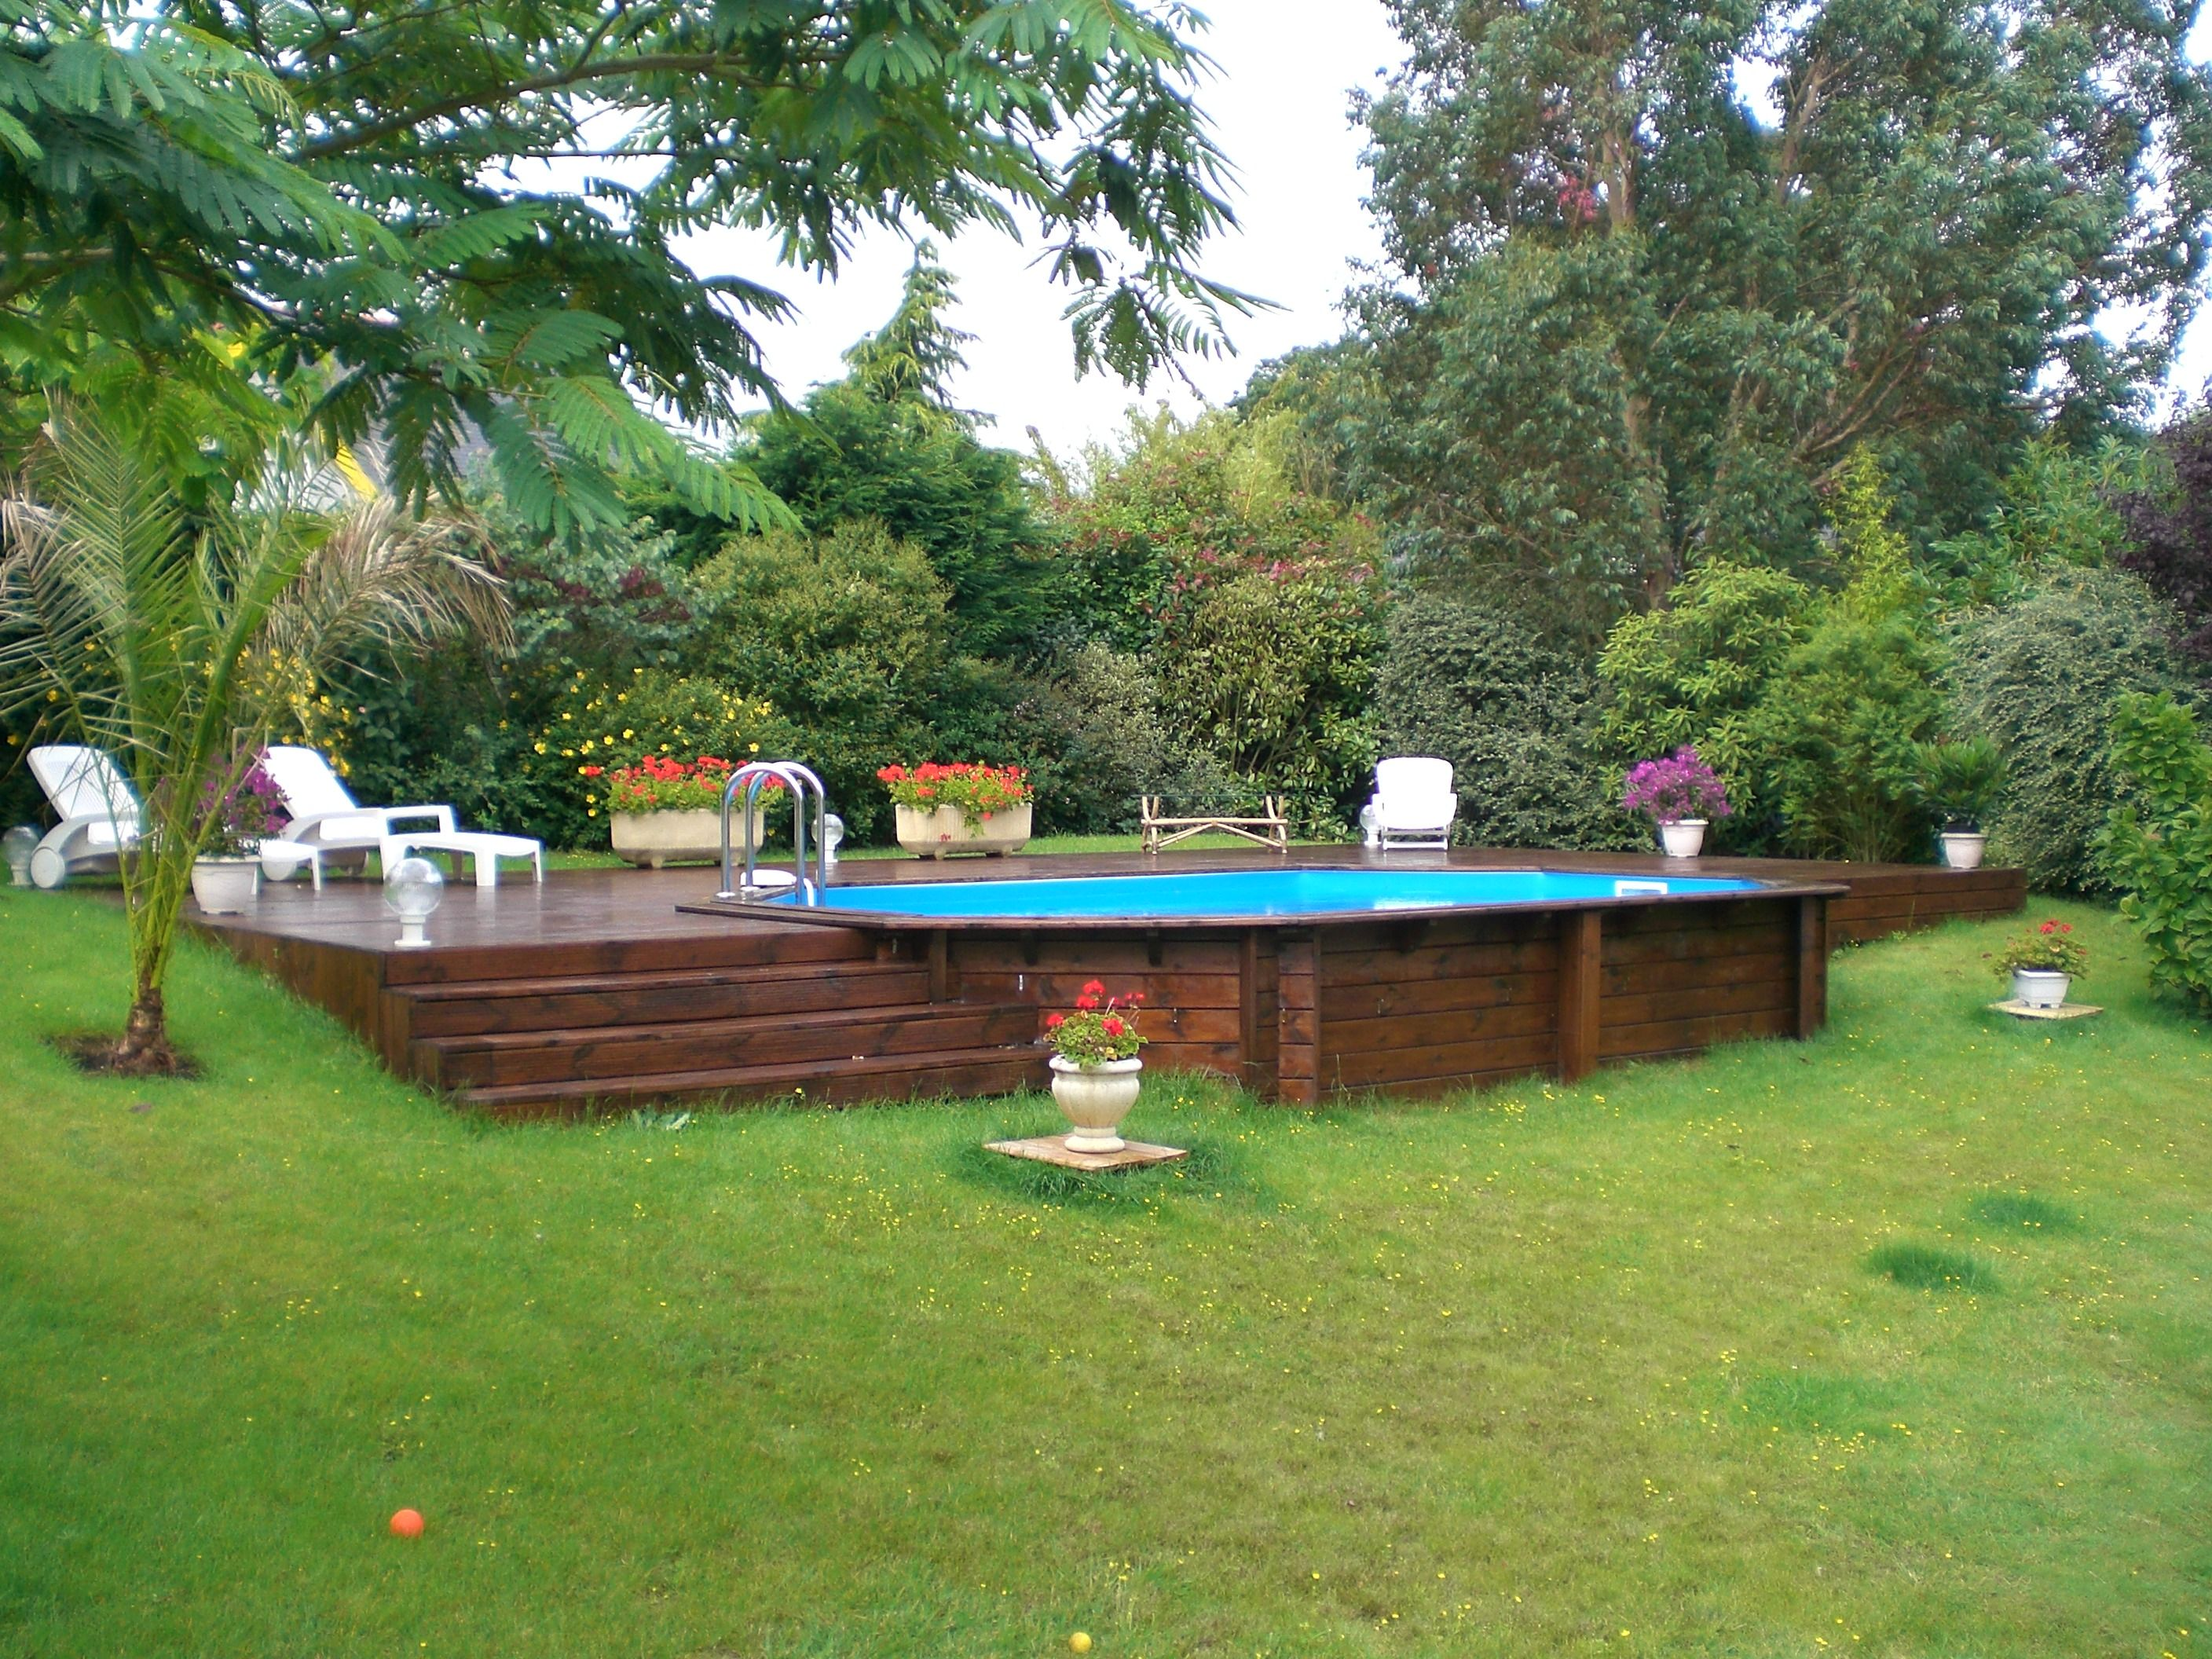 Piscine hors sol en bois semi enterr e sur terrain en for Piscine hors sol dimension